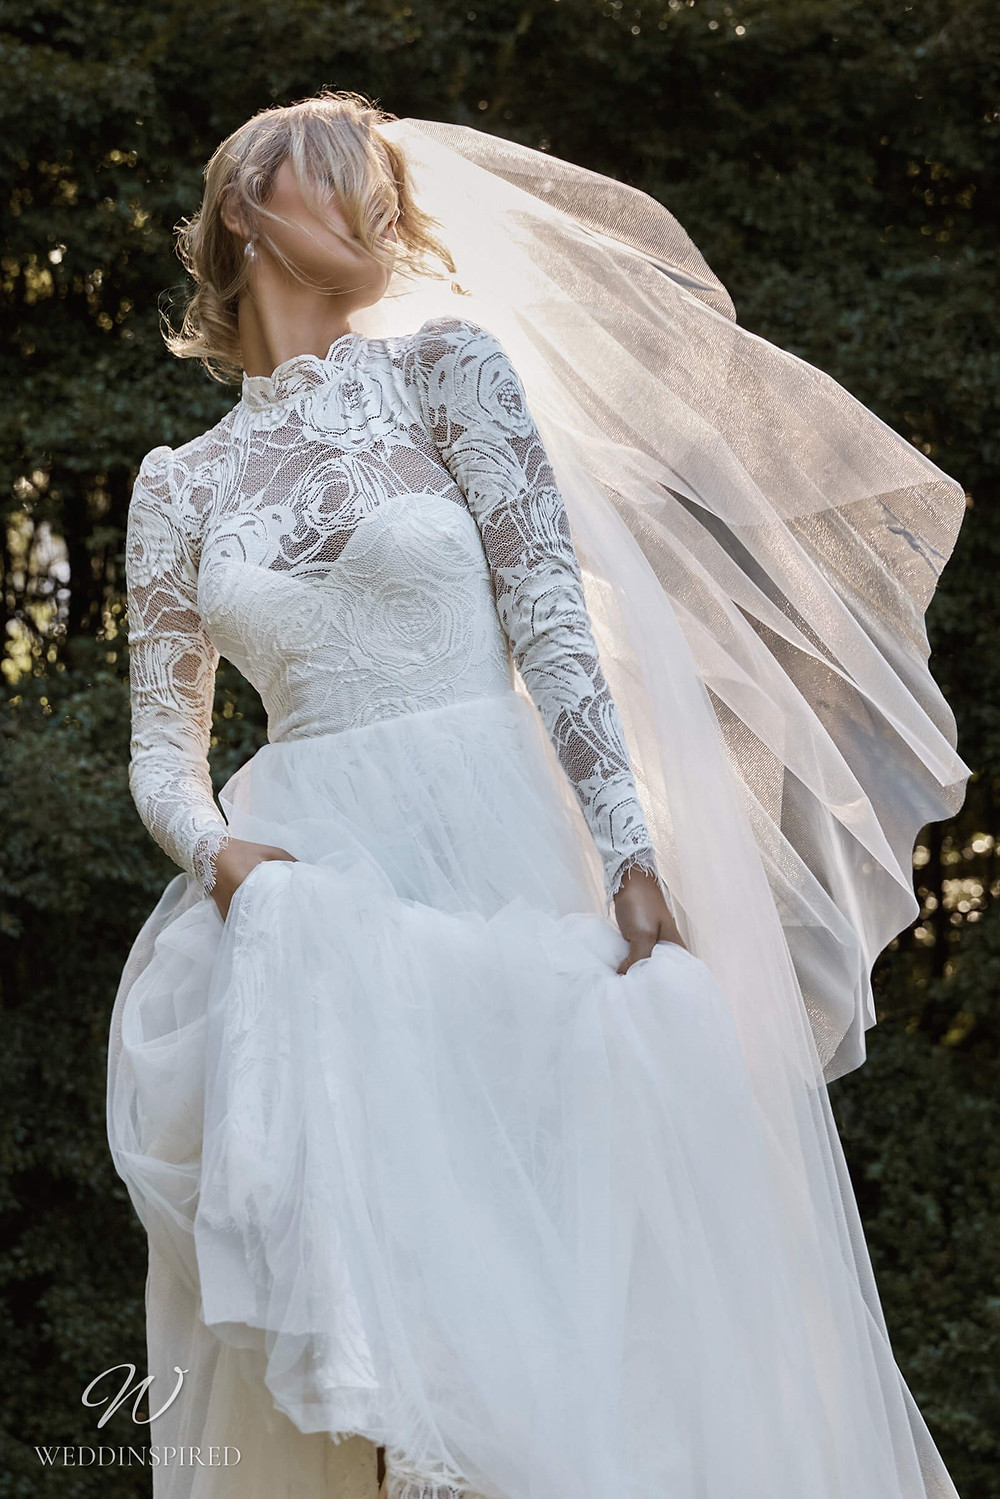 A Grace Loves Lace 2021 lace A-line wedding dress with long sleeves and a high neckline